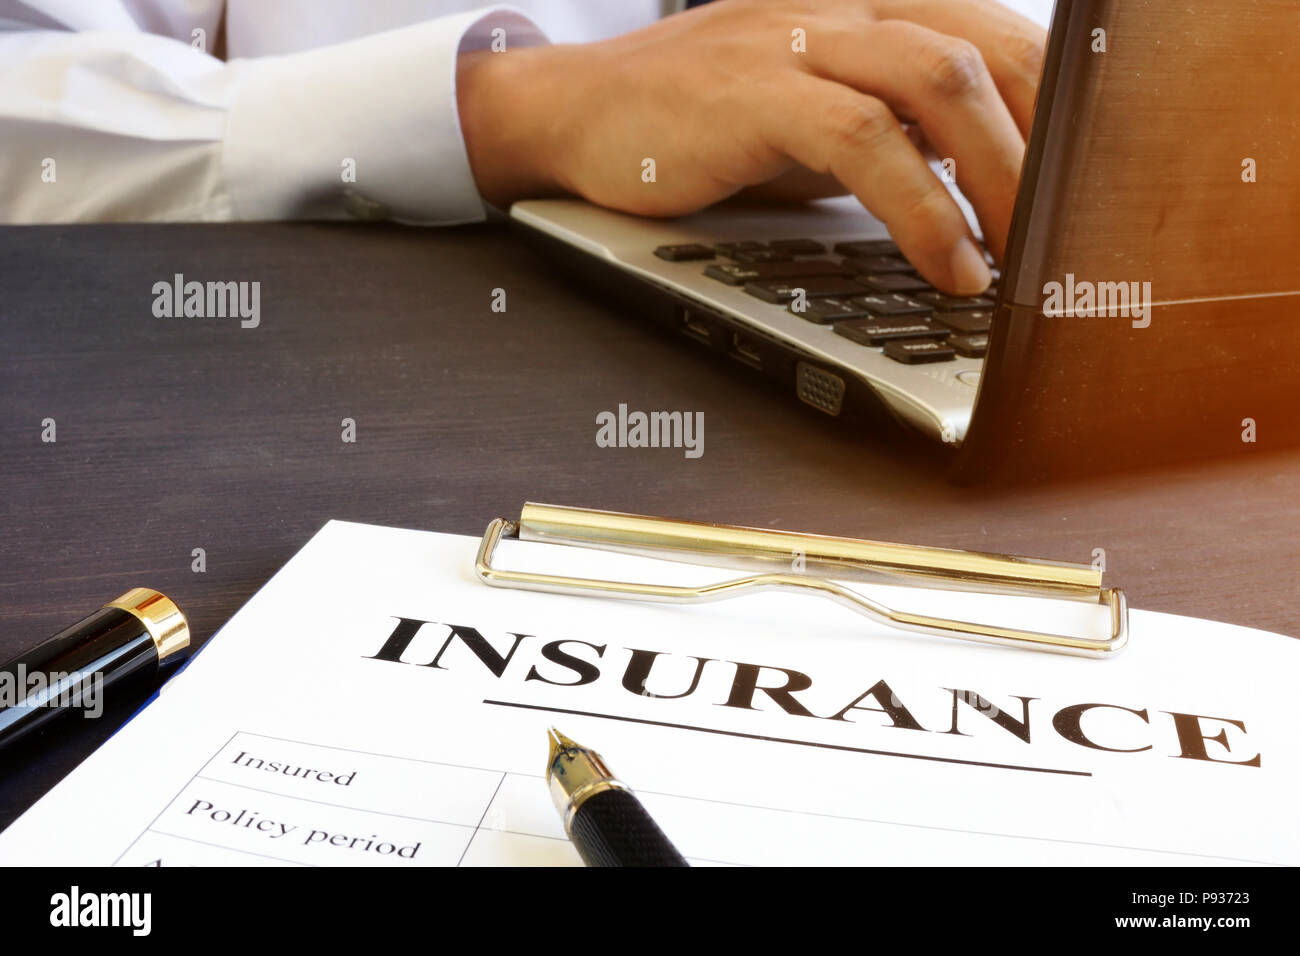 Insurance agreement on an office table. - Stock Image